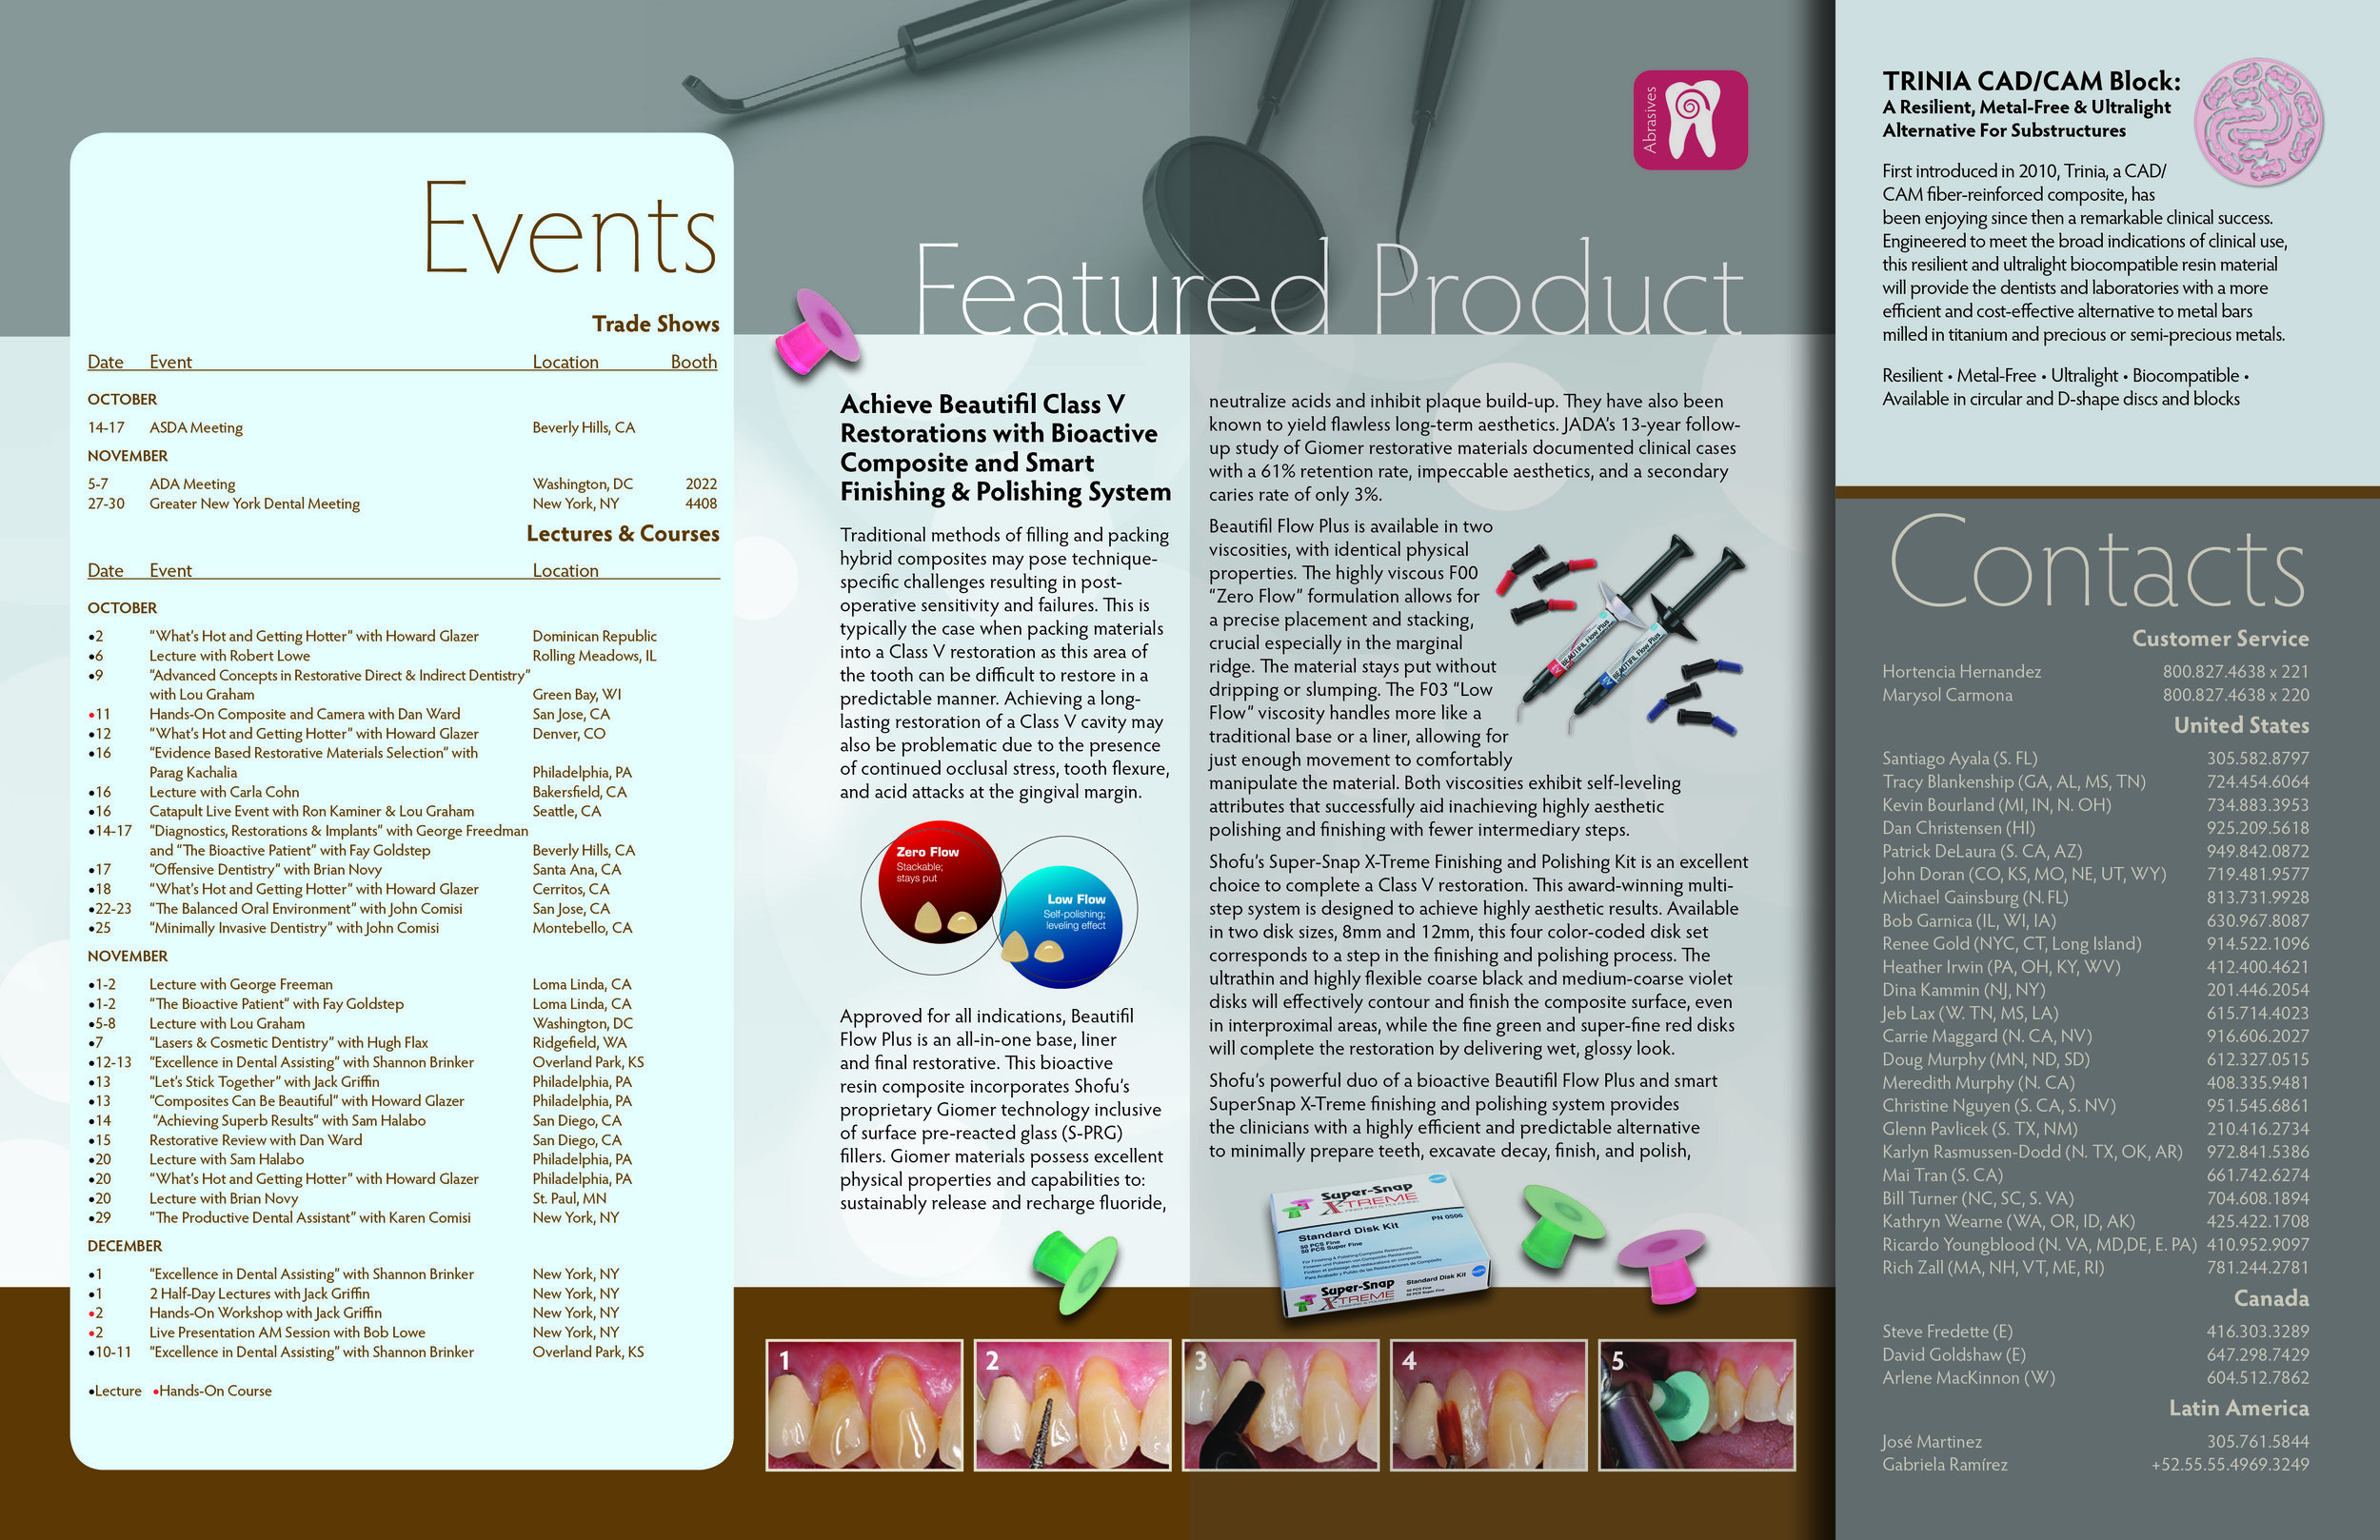 Inside spread with articles and events